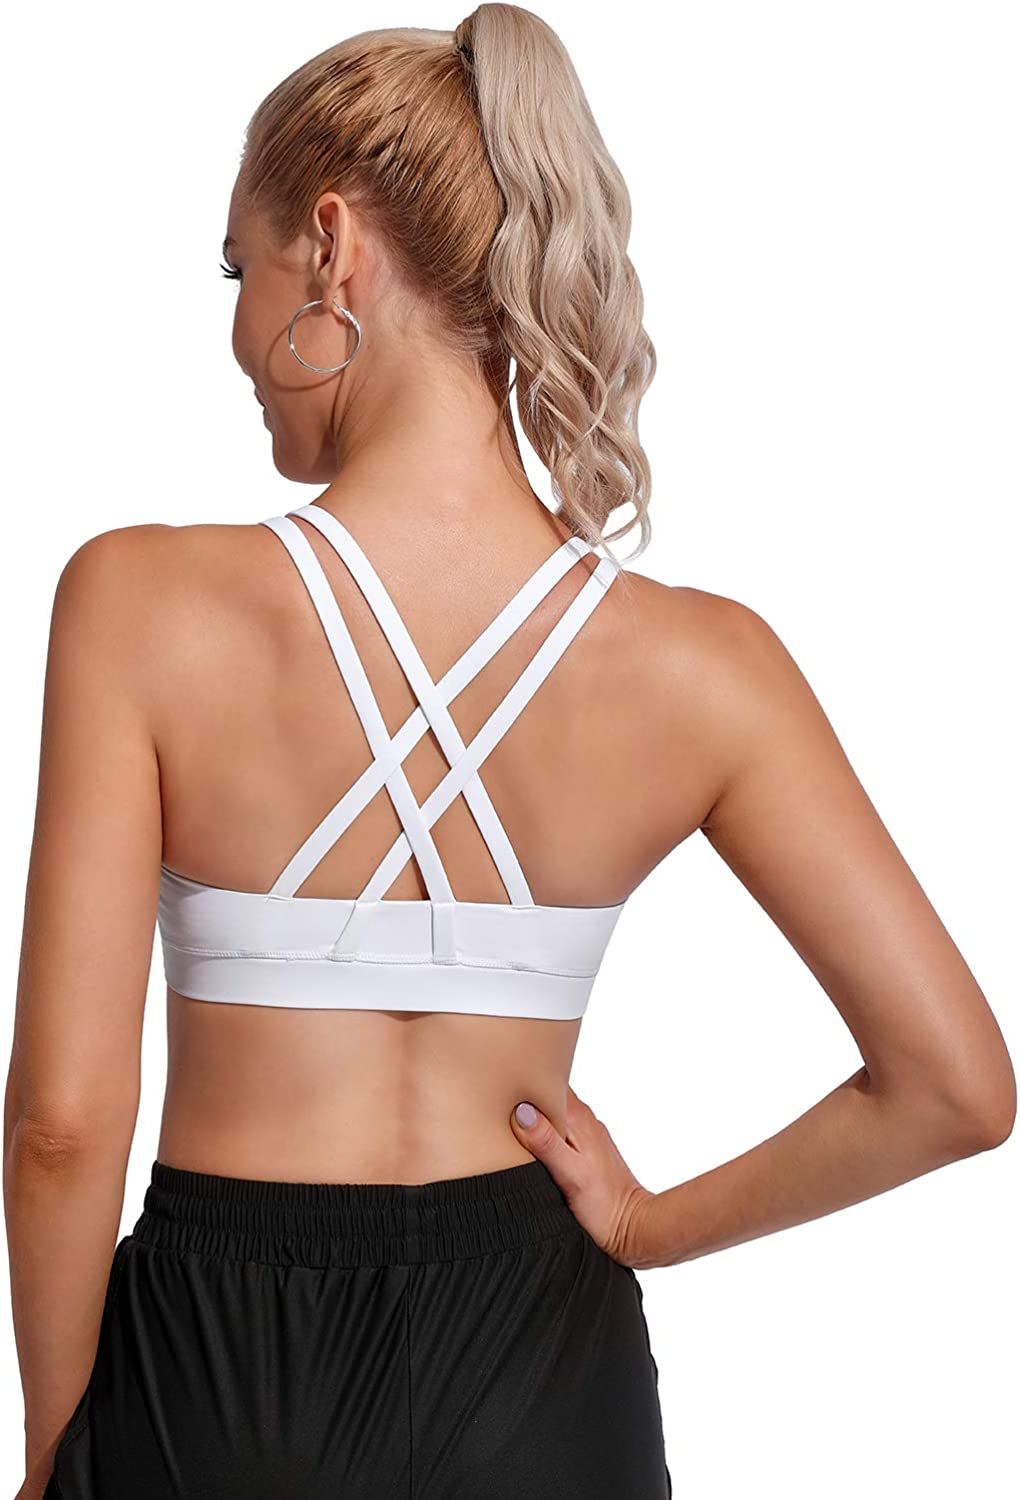 Promover Padded Sports Bras for Women Medium Support Activewear Strappy Wirefree Yoga Workout Tops